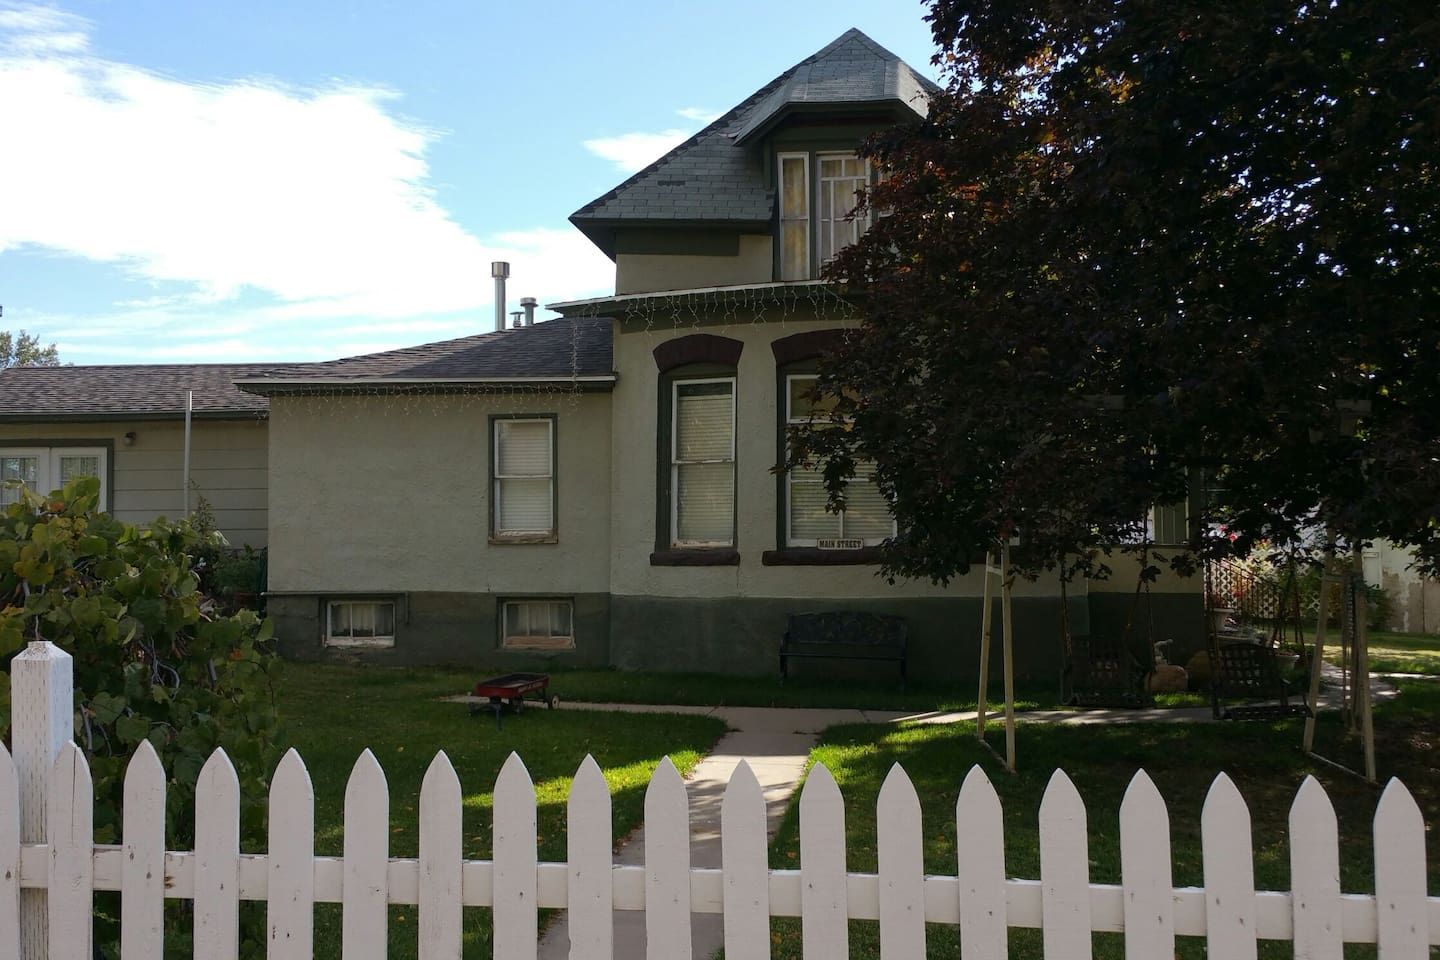 Beautiful Victorian home, with  plenty of charm inside and out. Easy access for parking for loading and unloading. large wide streets surround home with plenty of parking for either cars, boats, or motorhomes.